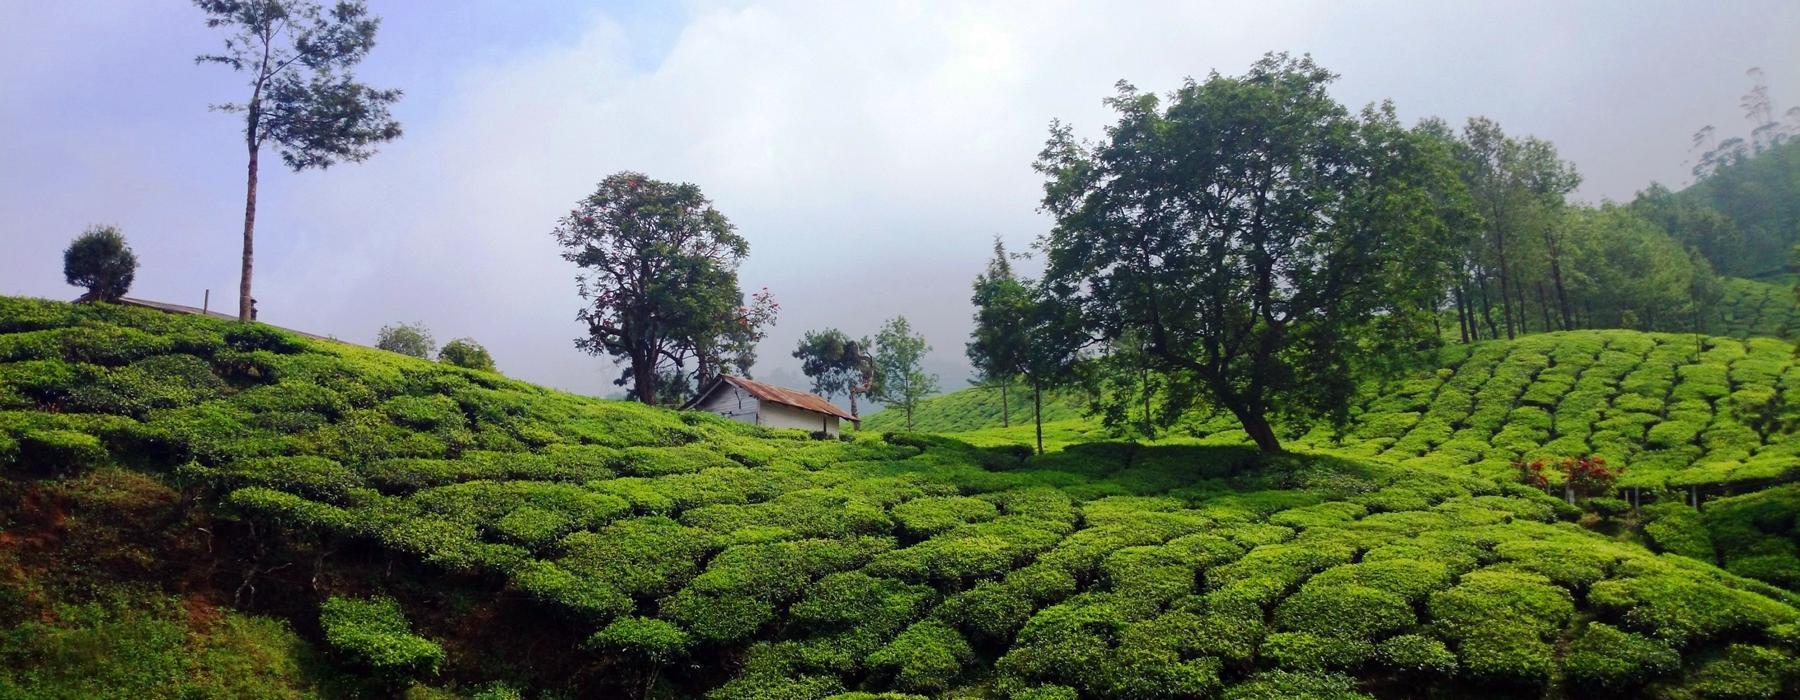 Tea/Spice Plantation Visit in Kerala